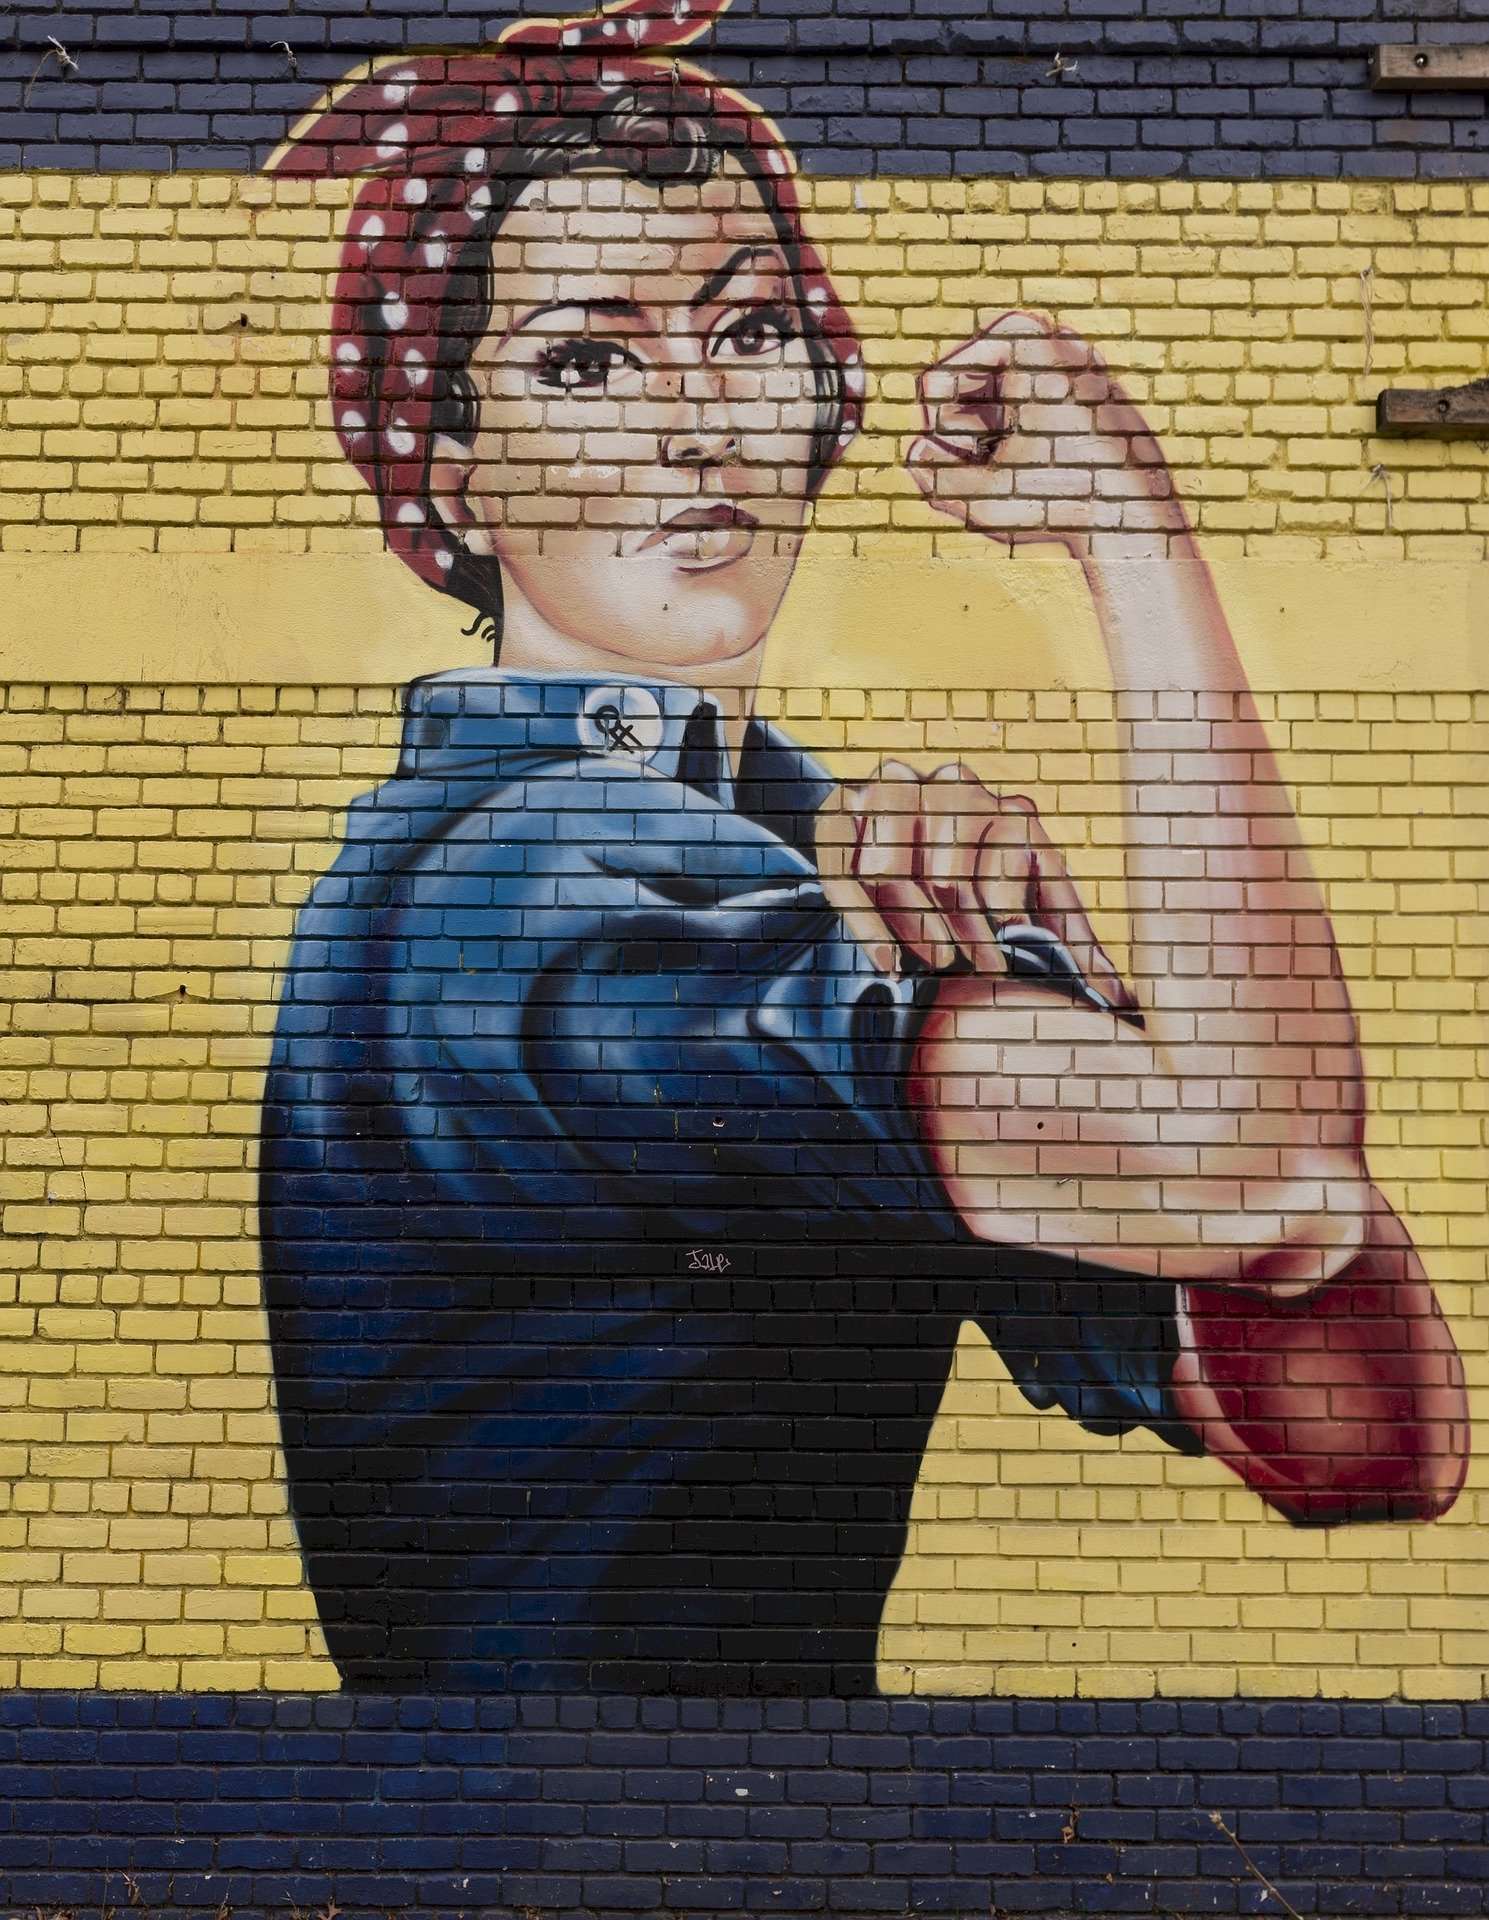 Rosie the Riveter as painted on a brick wall